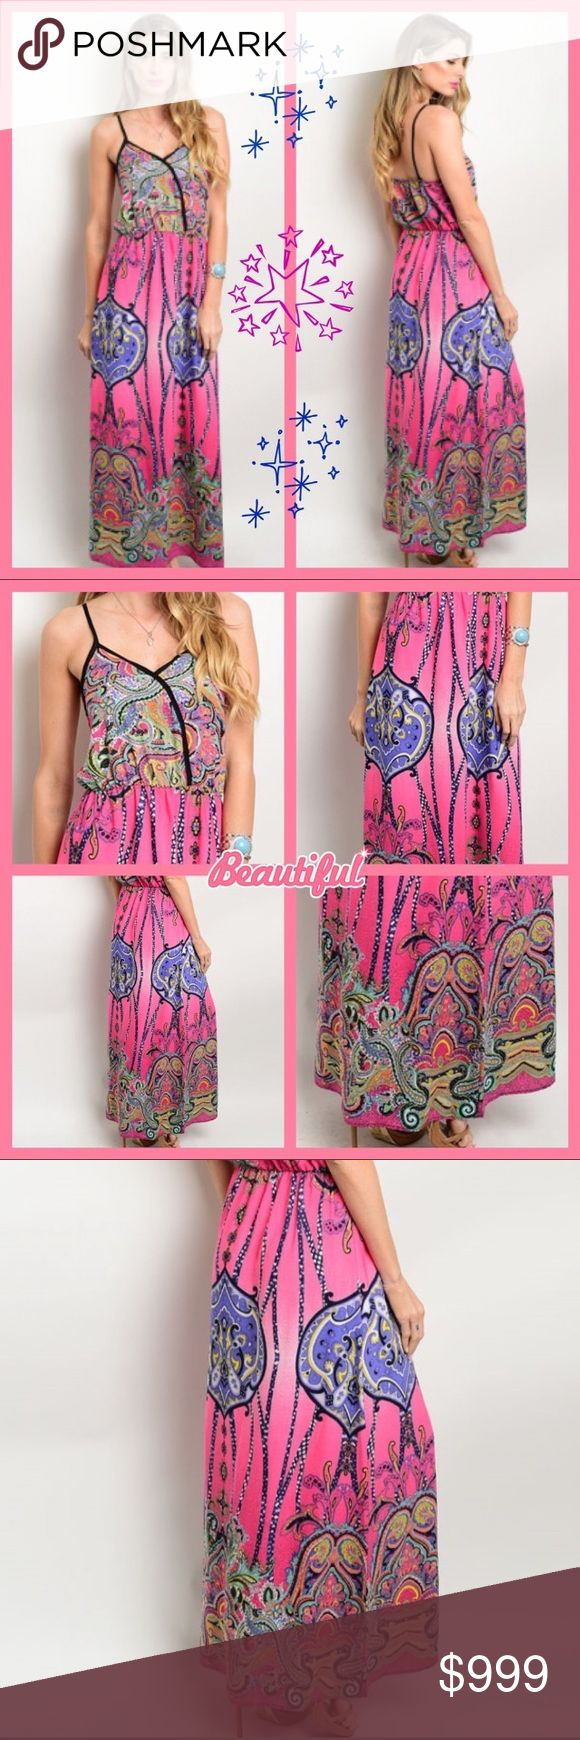 🆕 💕 Colorful ethnic print maxi dress. S-M-L Colorful ethnic print dress features a maxi hem length, empire silhouette and spaghetti straps. Perfect for a warm summer day. Material 100 poly. Made in USA 🇺🇸 Available in S-M-L. Bust small is 30, length 56. Bust medium is 32, length 56. Bust large is 34, length 58. ♦️PRICE FIRM UNLESS BUNDLED♦️ Dresses Maxi